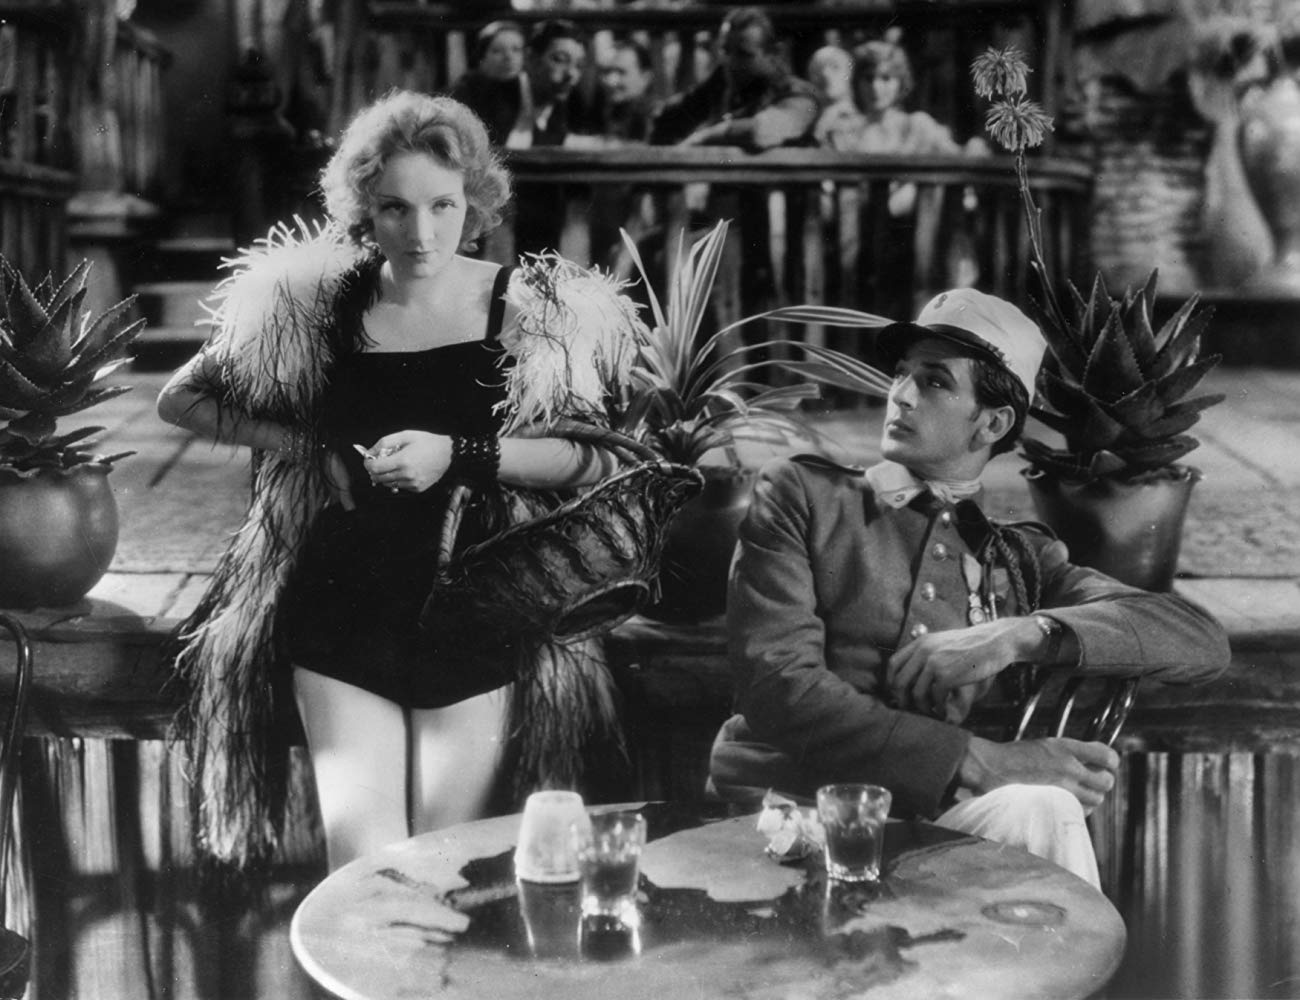 Marlene wearing a performance outfit revealing her legs, standing next to a soldier at a bar.